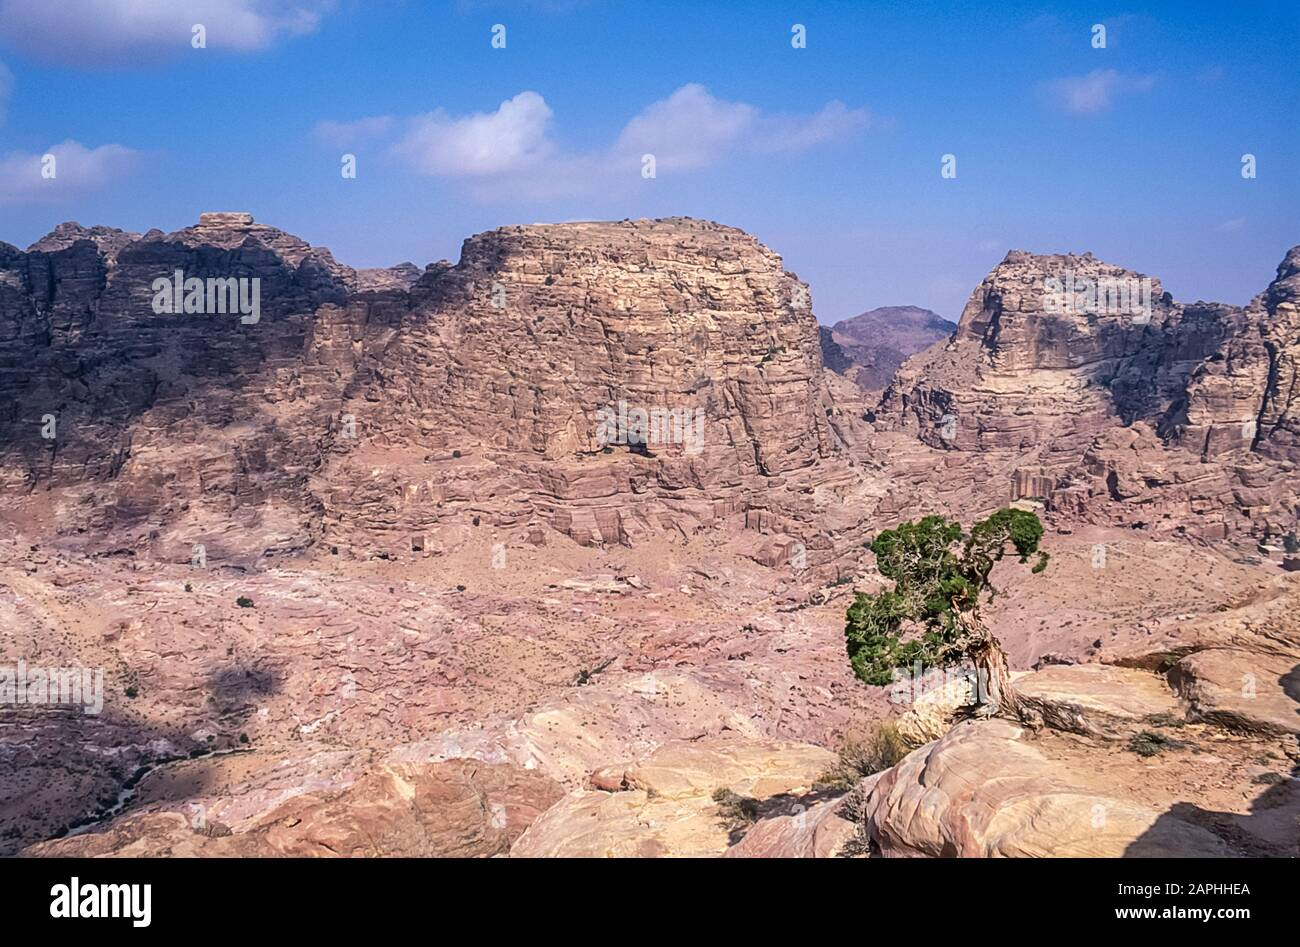 Jordan. Rugged mountain landscape overlook at the World famous UNESCO World Heritage Site of the Nabatean and Roman  ruins and relics at the desert town of Petra much used as a motion picture film set such as Indiana Jones Temple of Doom, now a very popular tourist attraction Stock Photo